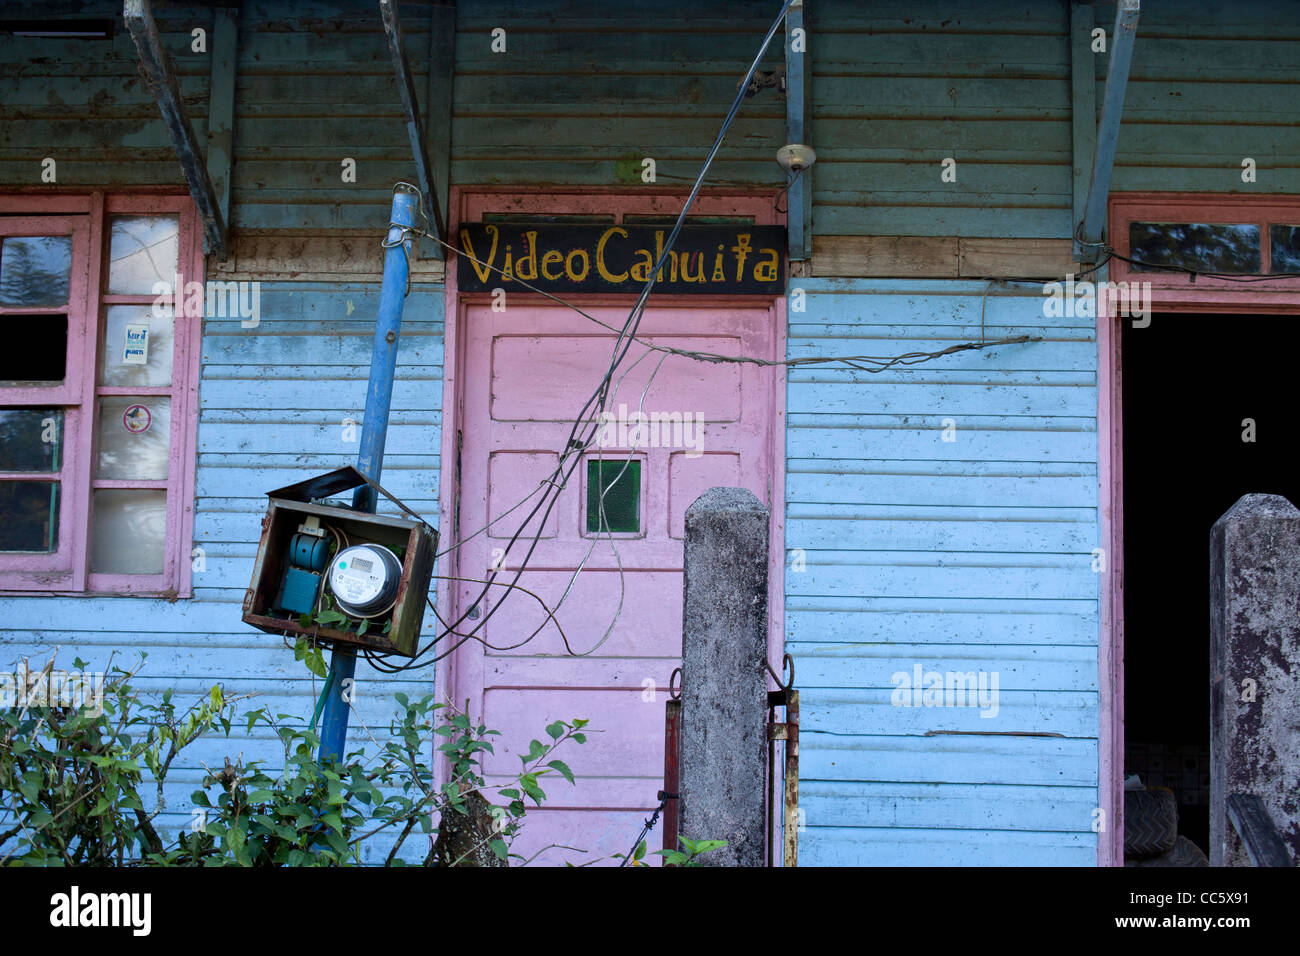 typical carribbean old wooden building with Video Cahuita in the small village of Cahuita, - Stock Image